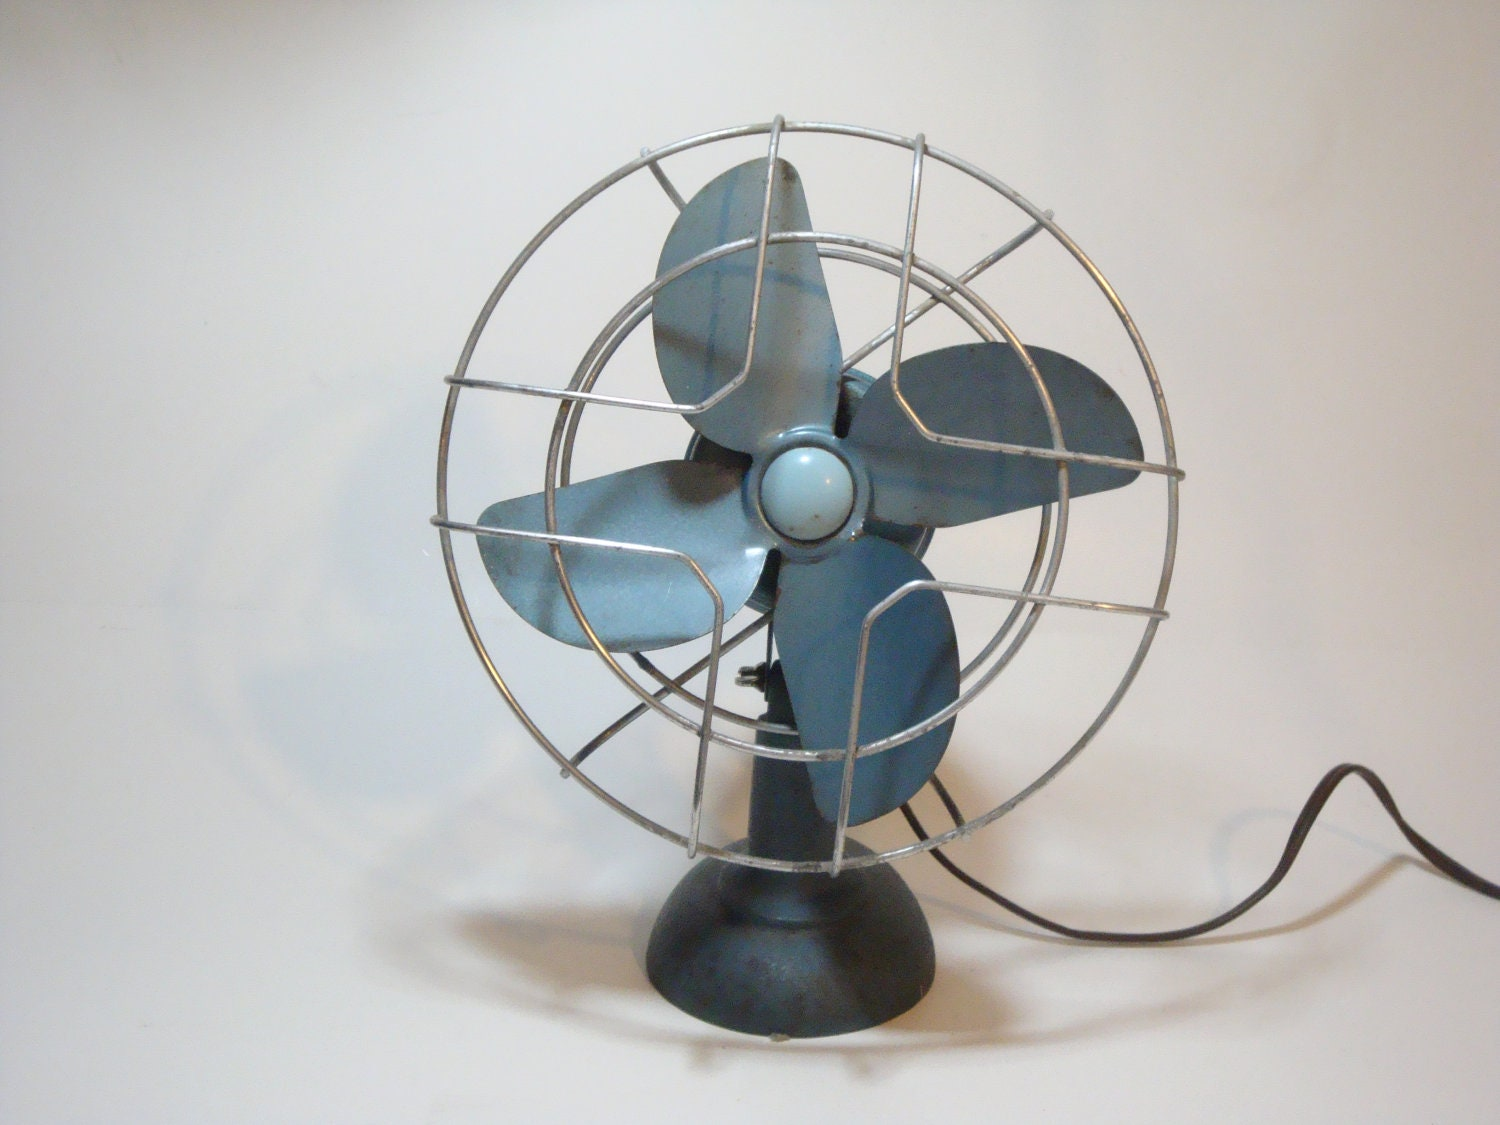 Vintage Desk Table FanVintage Desk Fan